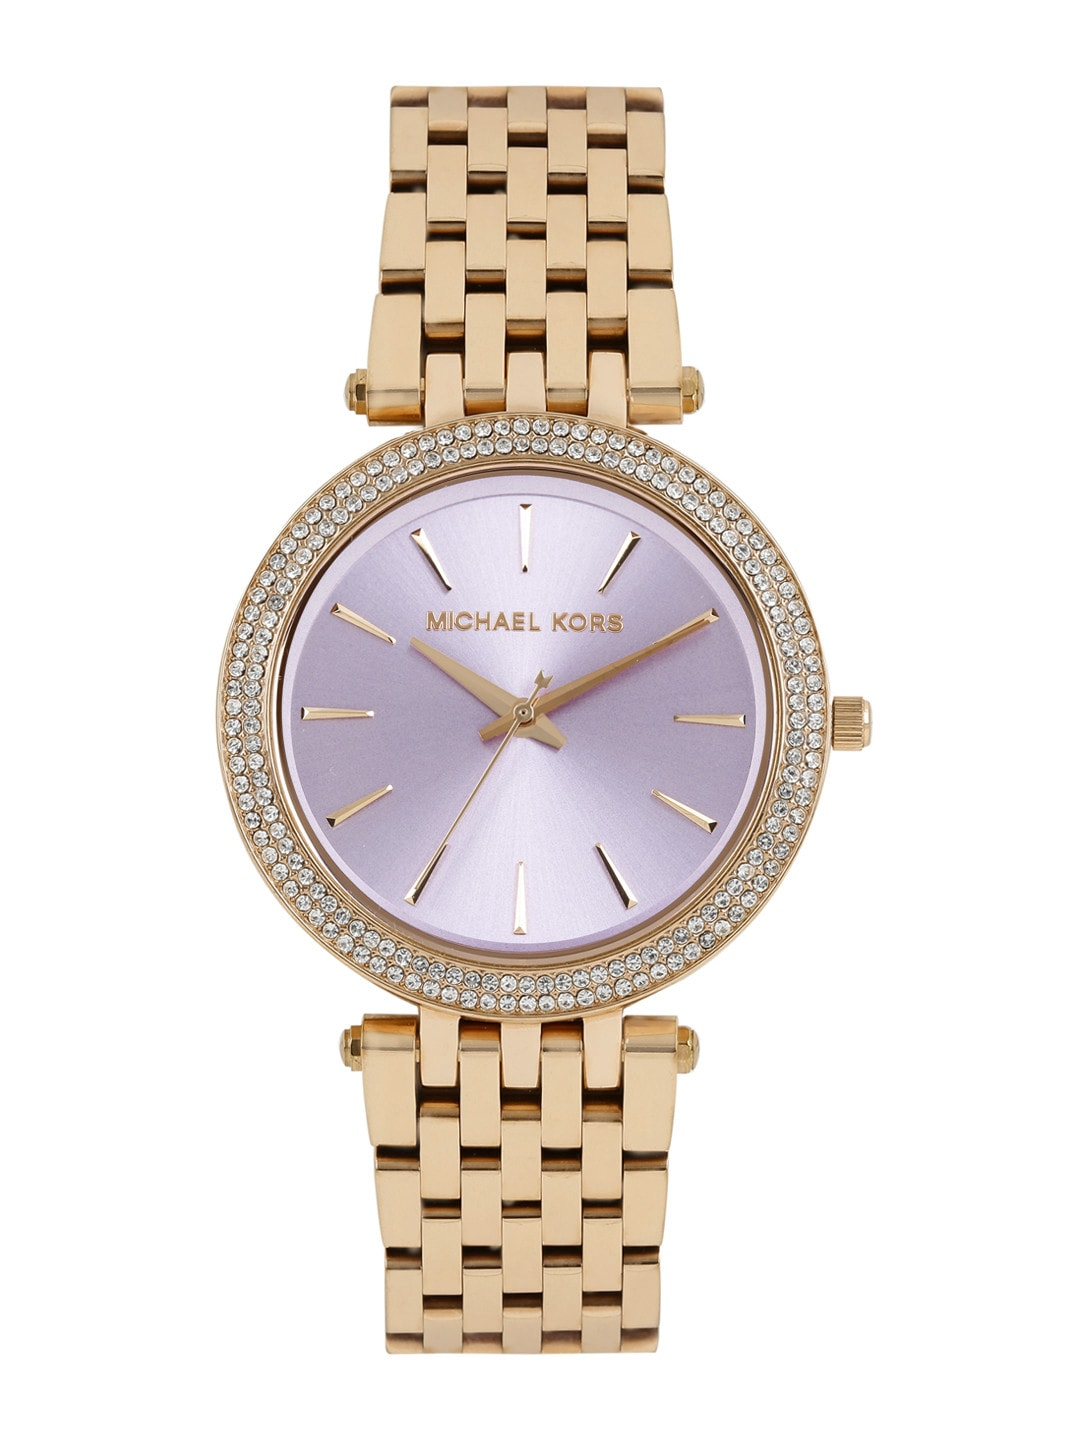 michael kors watch price in india CONFERENCE